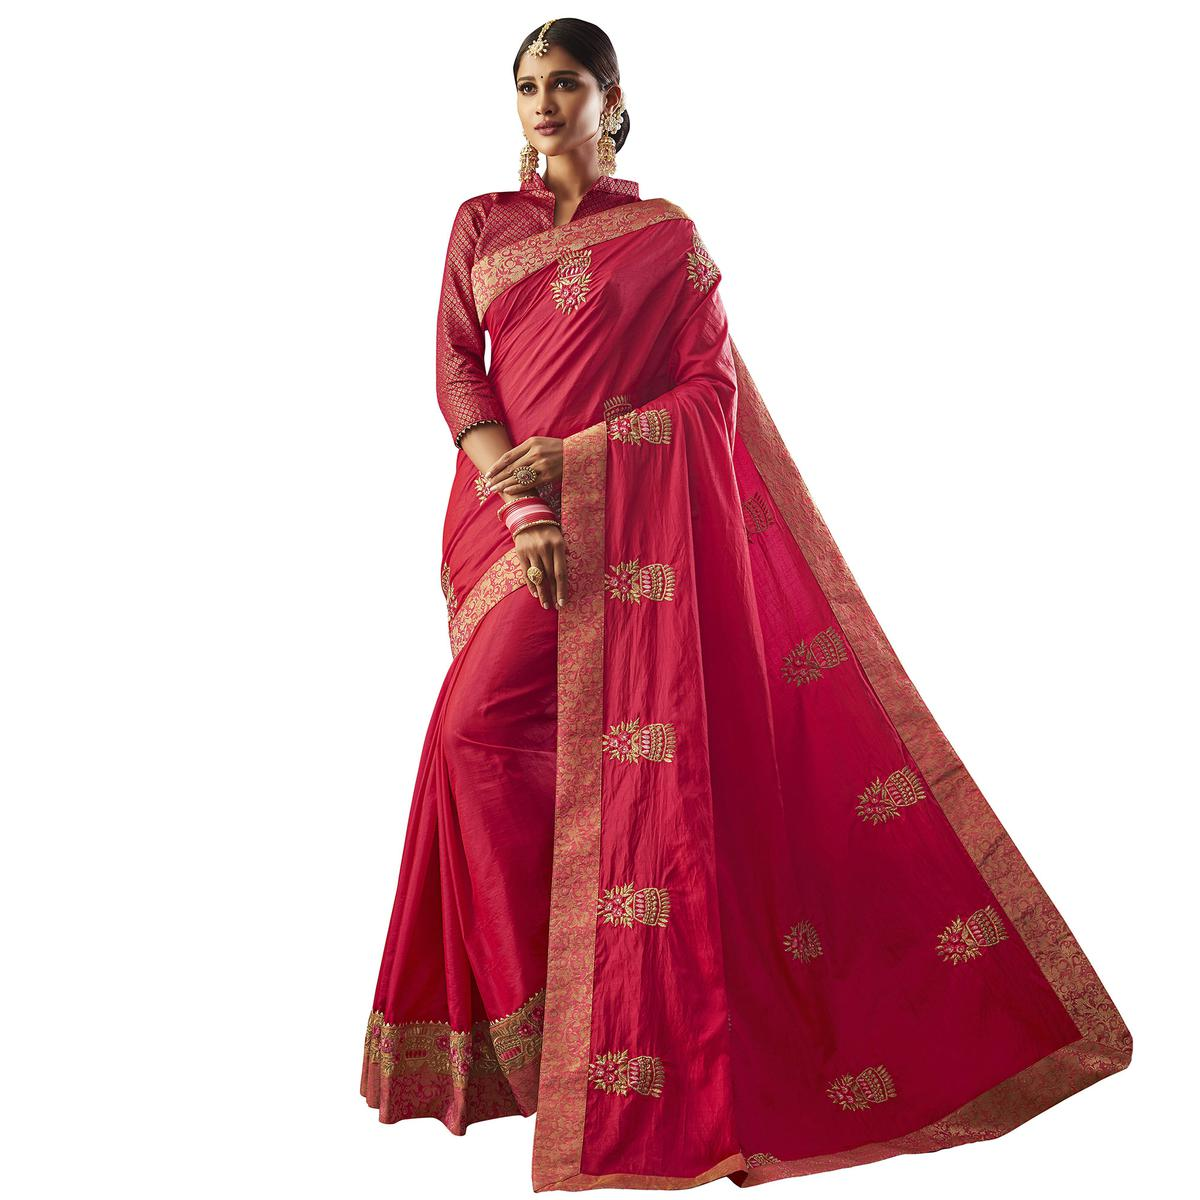 Captivating Pink Colored Partywear Embroidered Raw Silk Saree